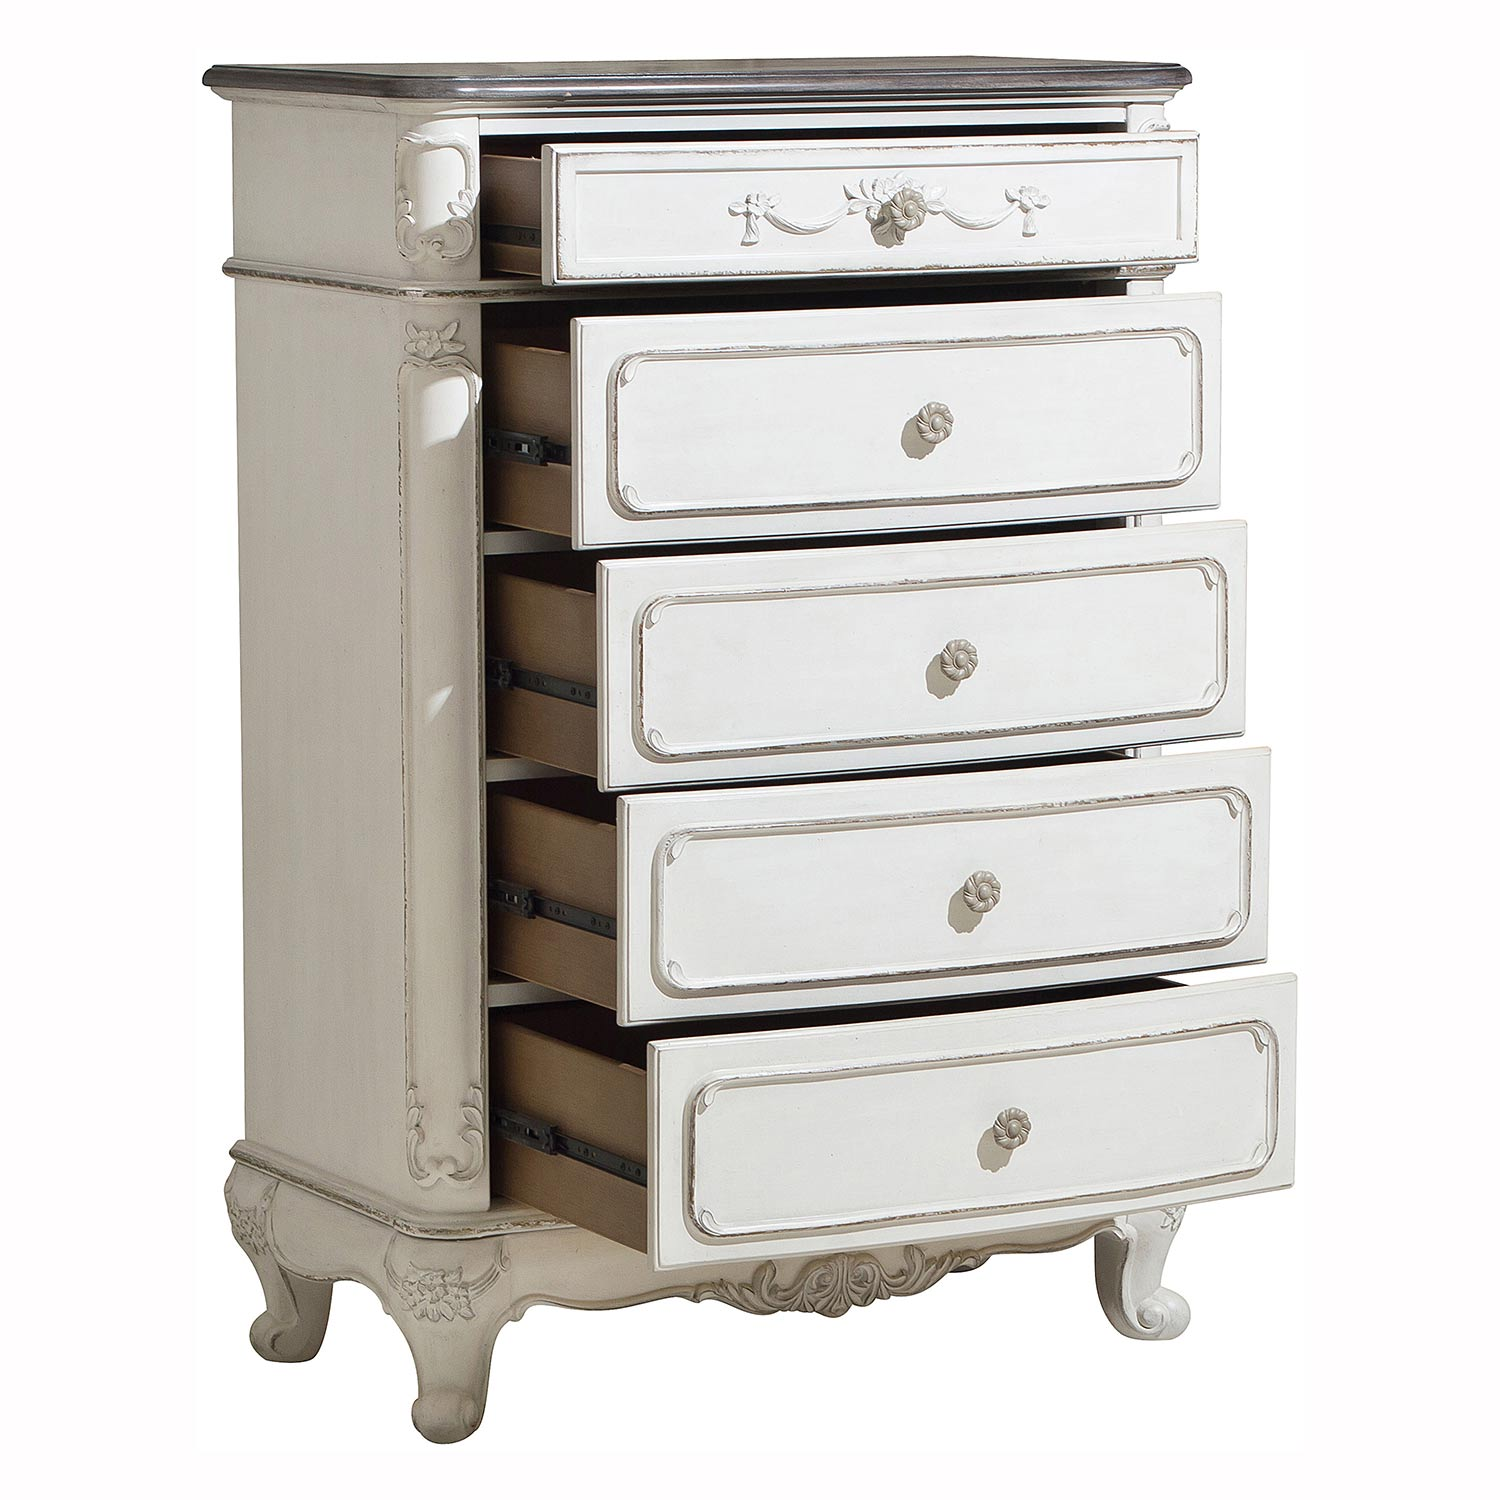 Homelegance Cinderella Chest - Antique White with Gray Rub-Through